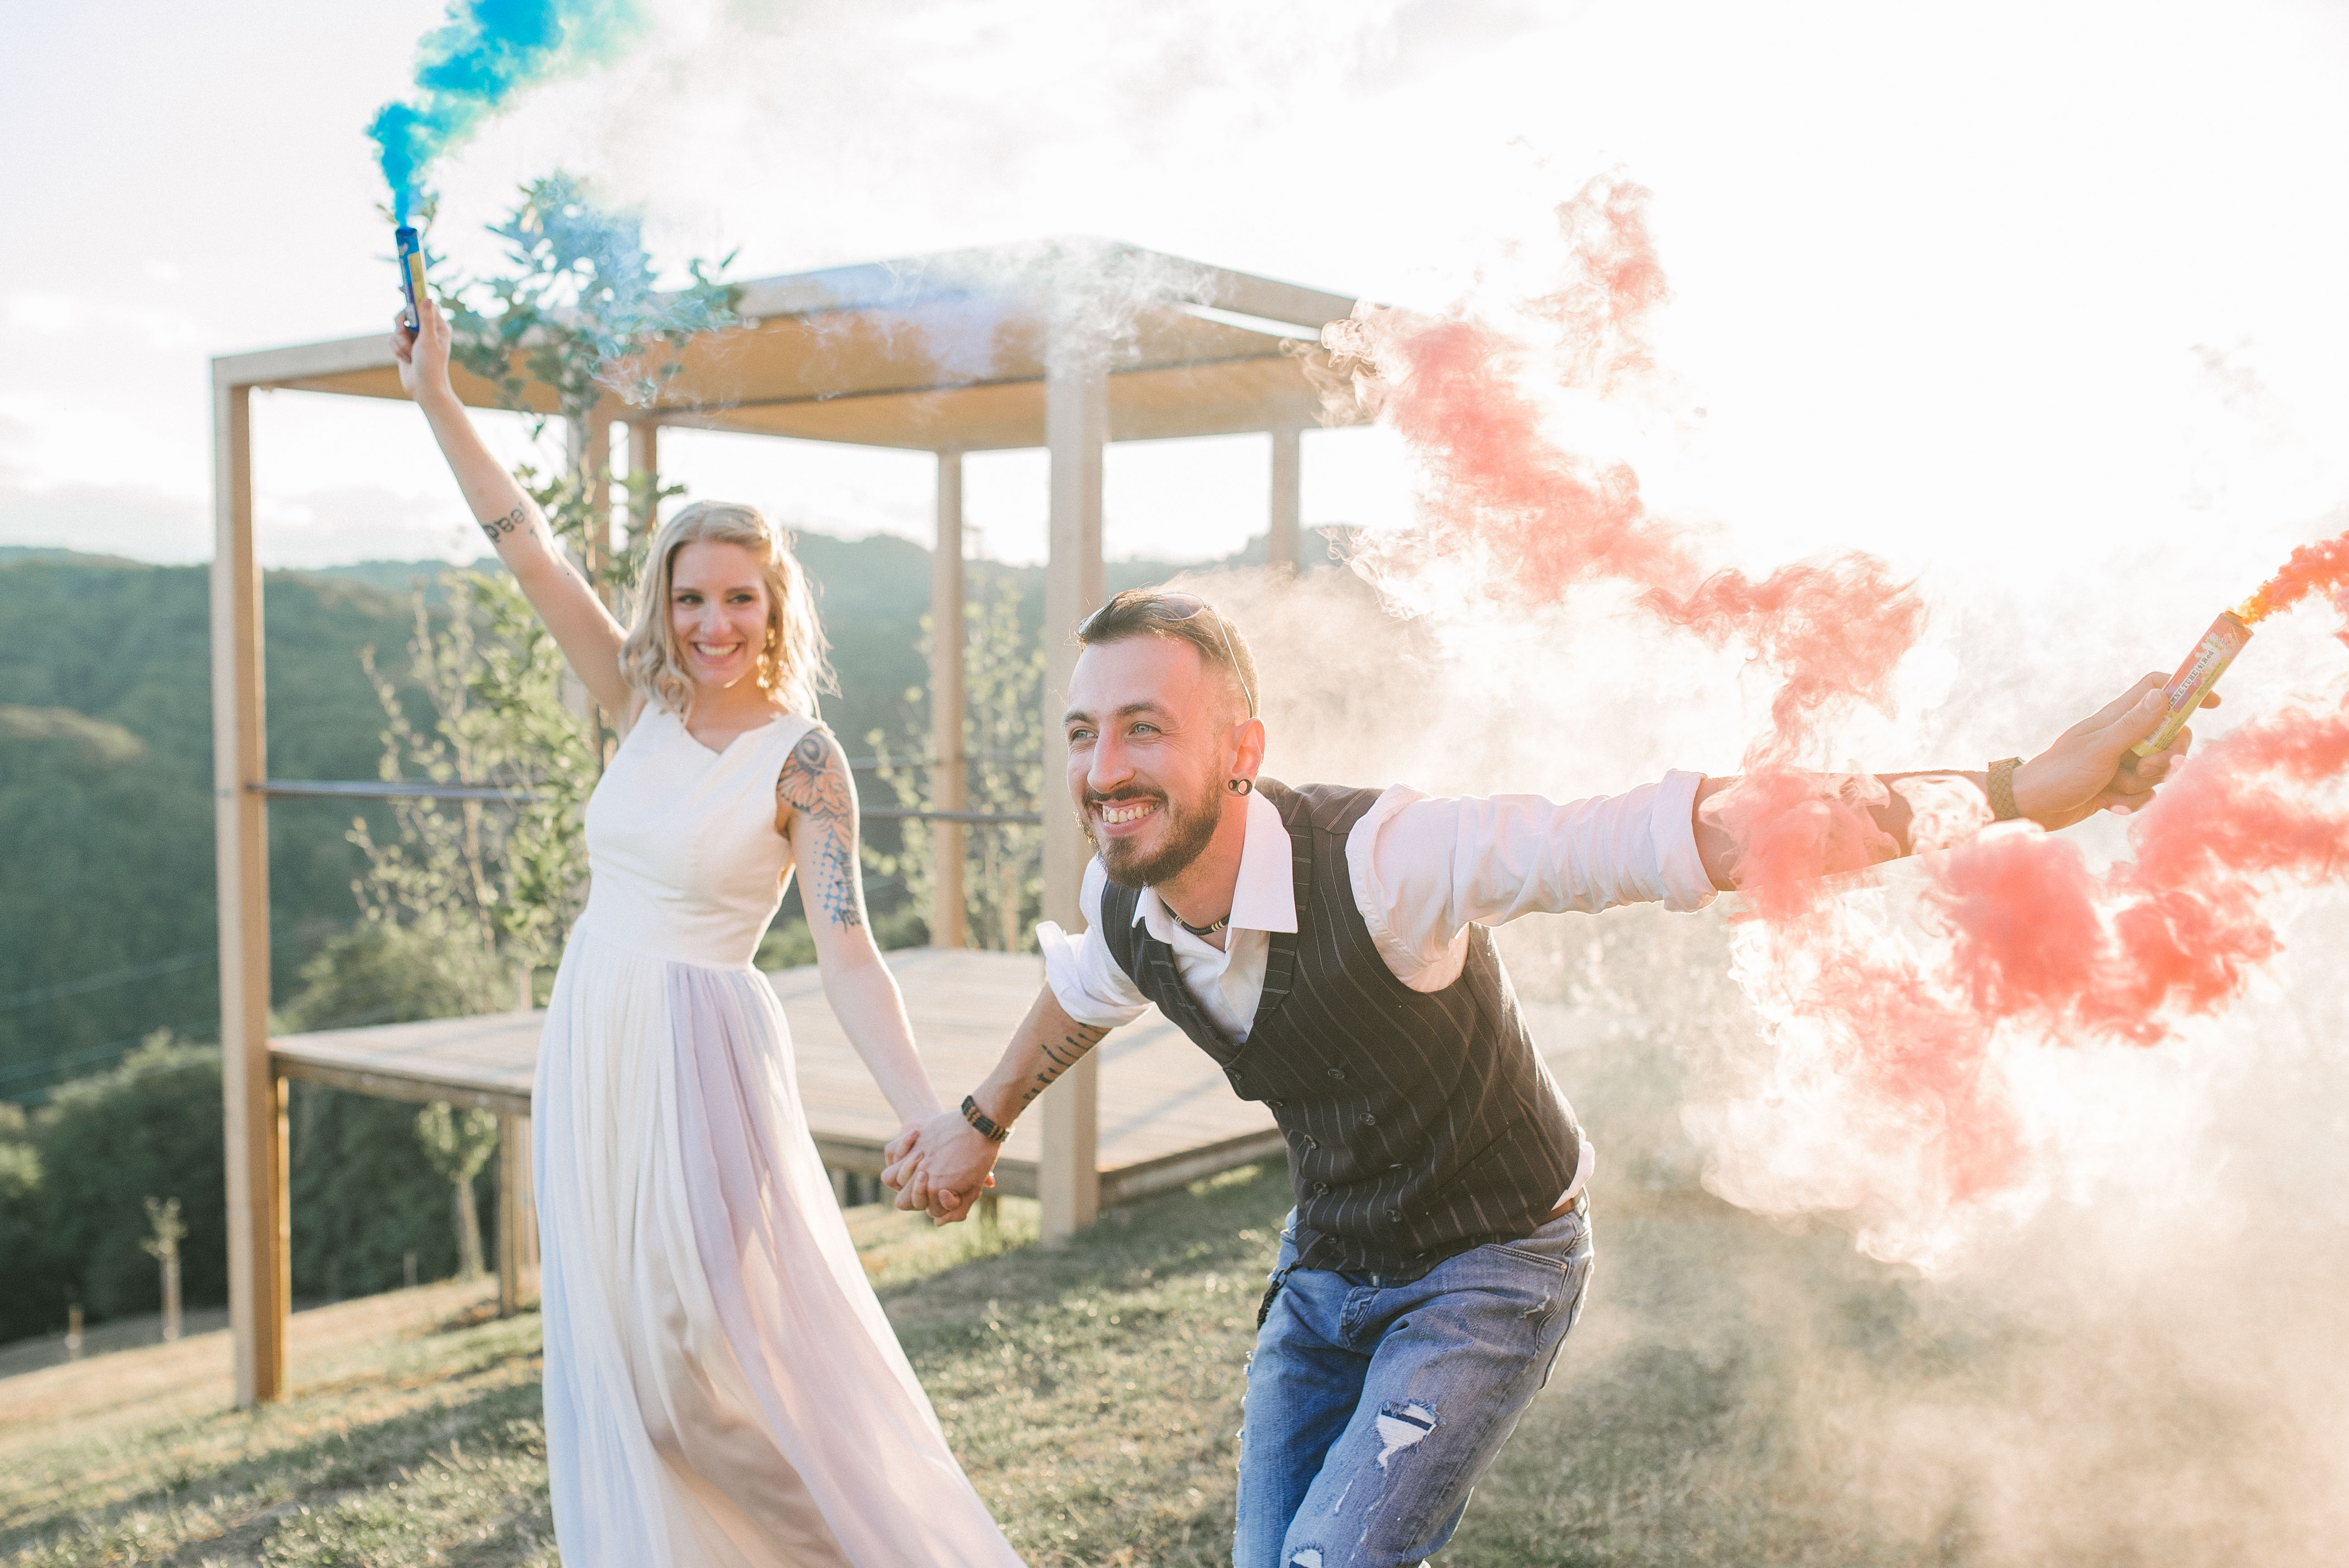 Hipster Wedding | Neža Reisner - Wedding Photographer